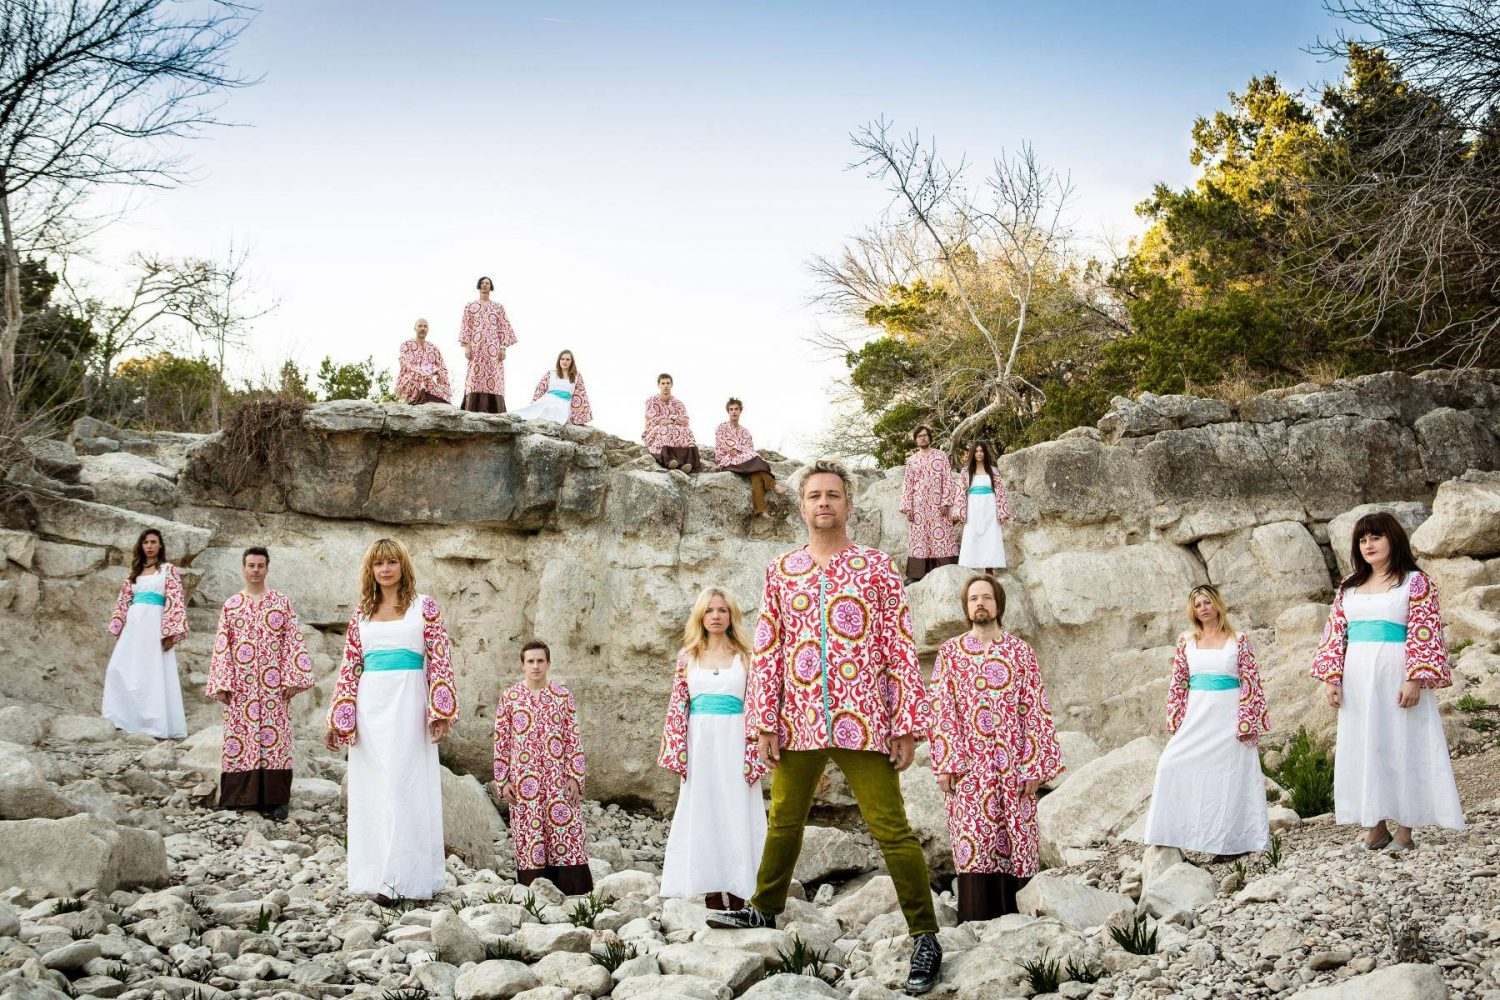 The Polyphonic Spree Cover ABBA and More on Surprise Album